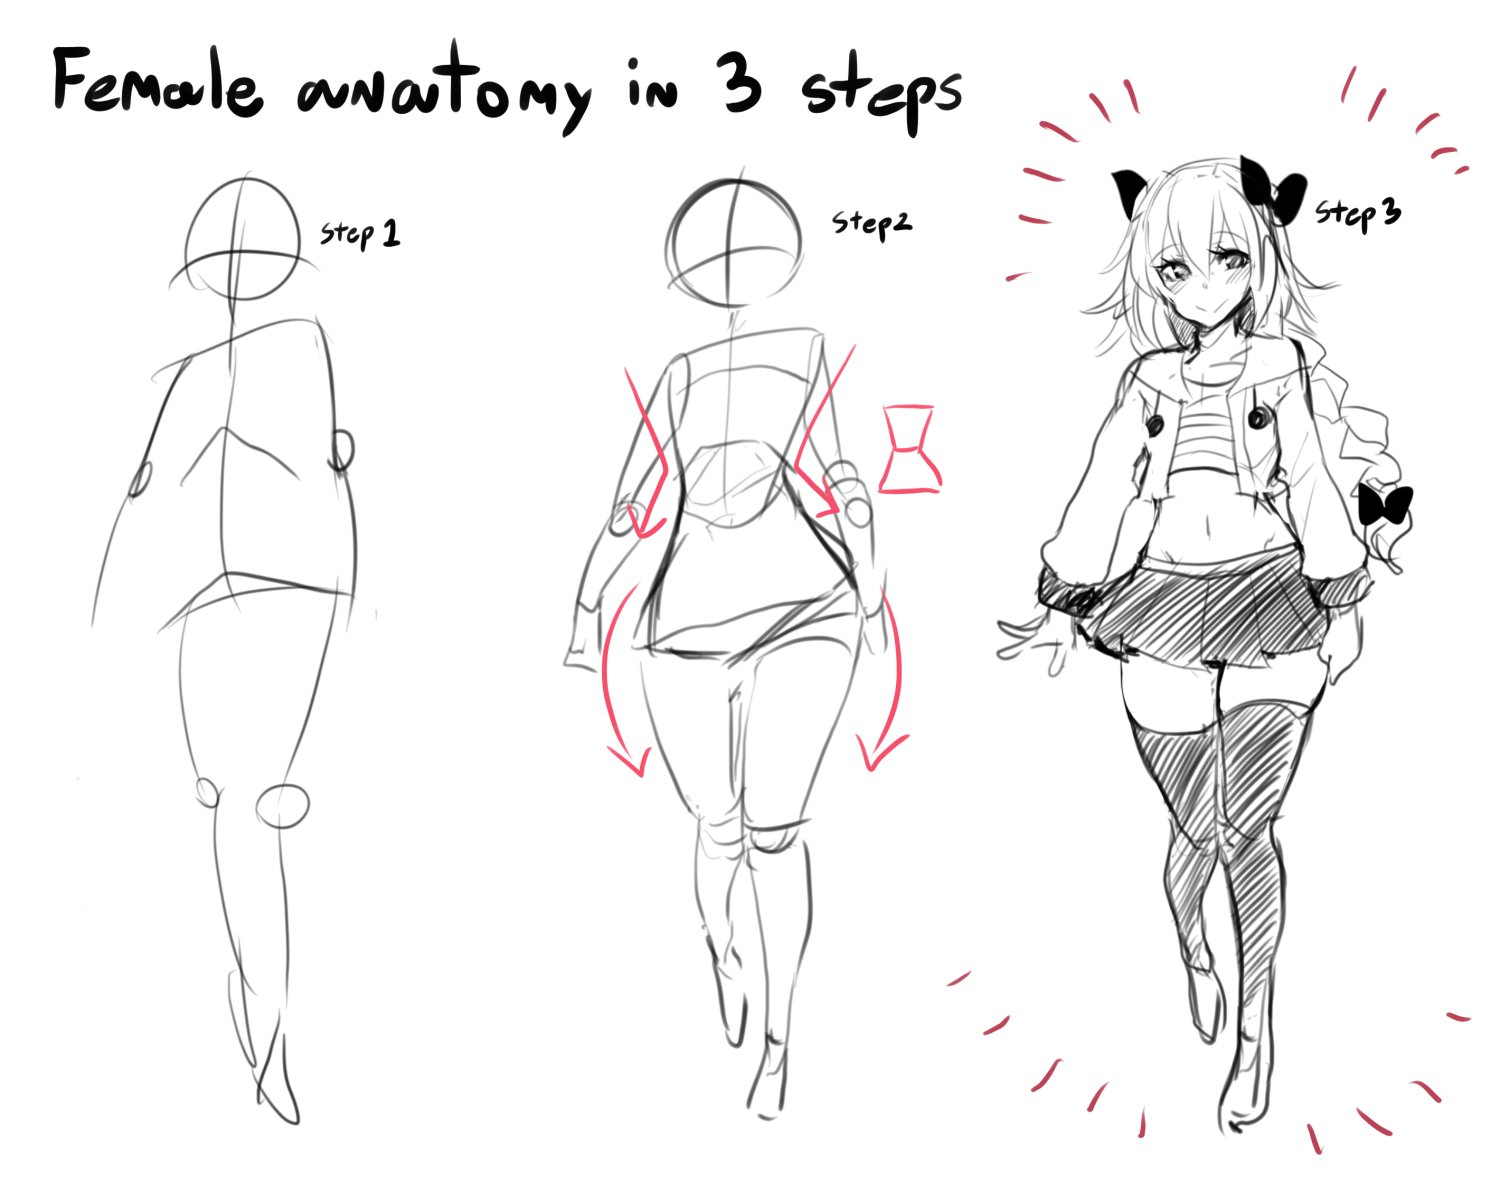 It's just a photo of Unusual Women Anatomy Drawing